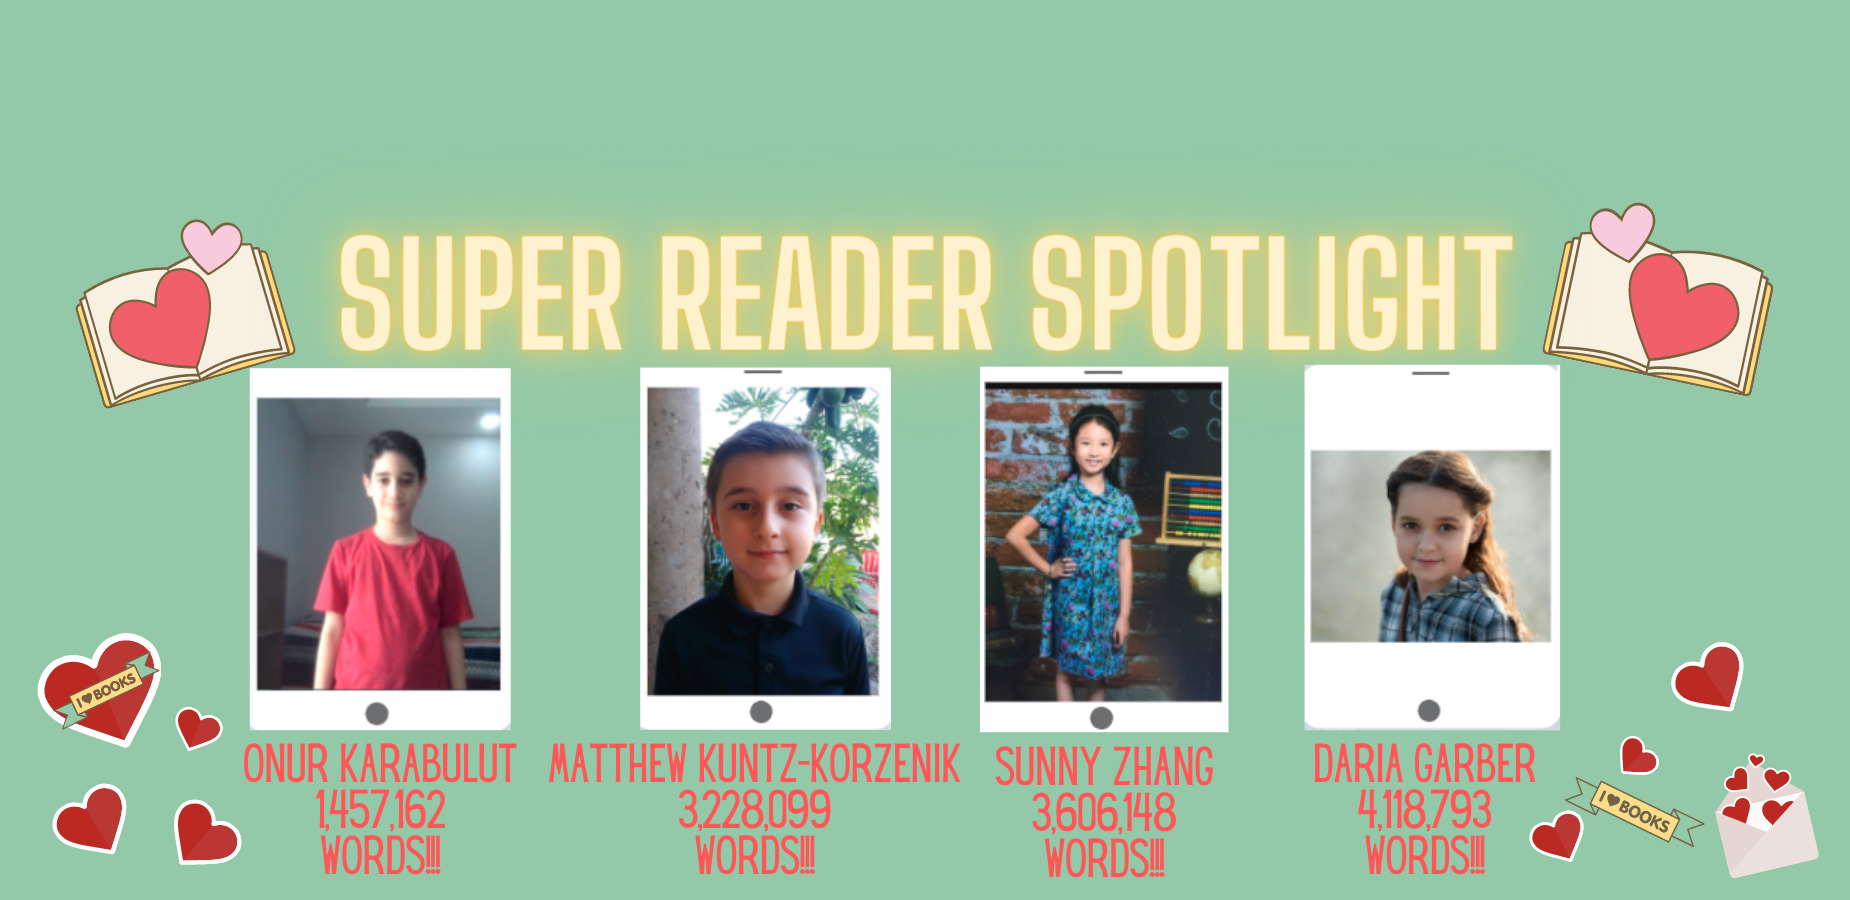 Super Reader Spotlight